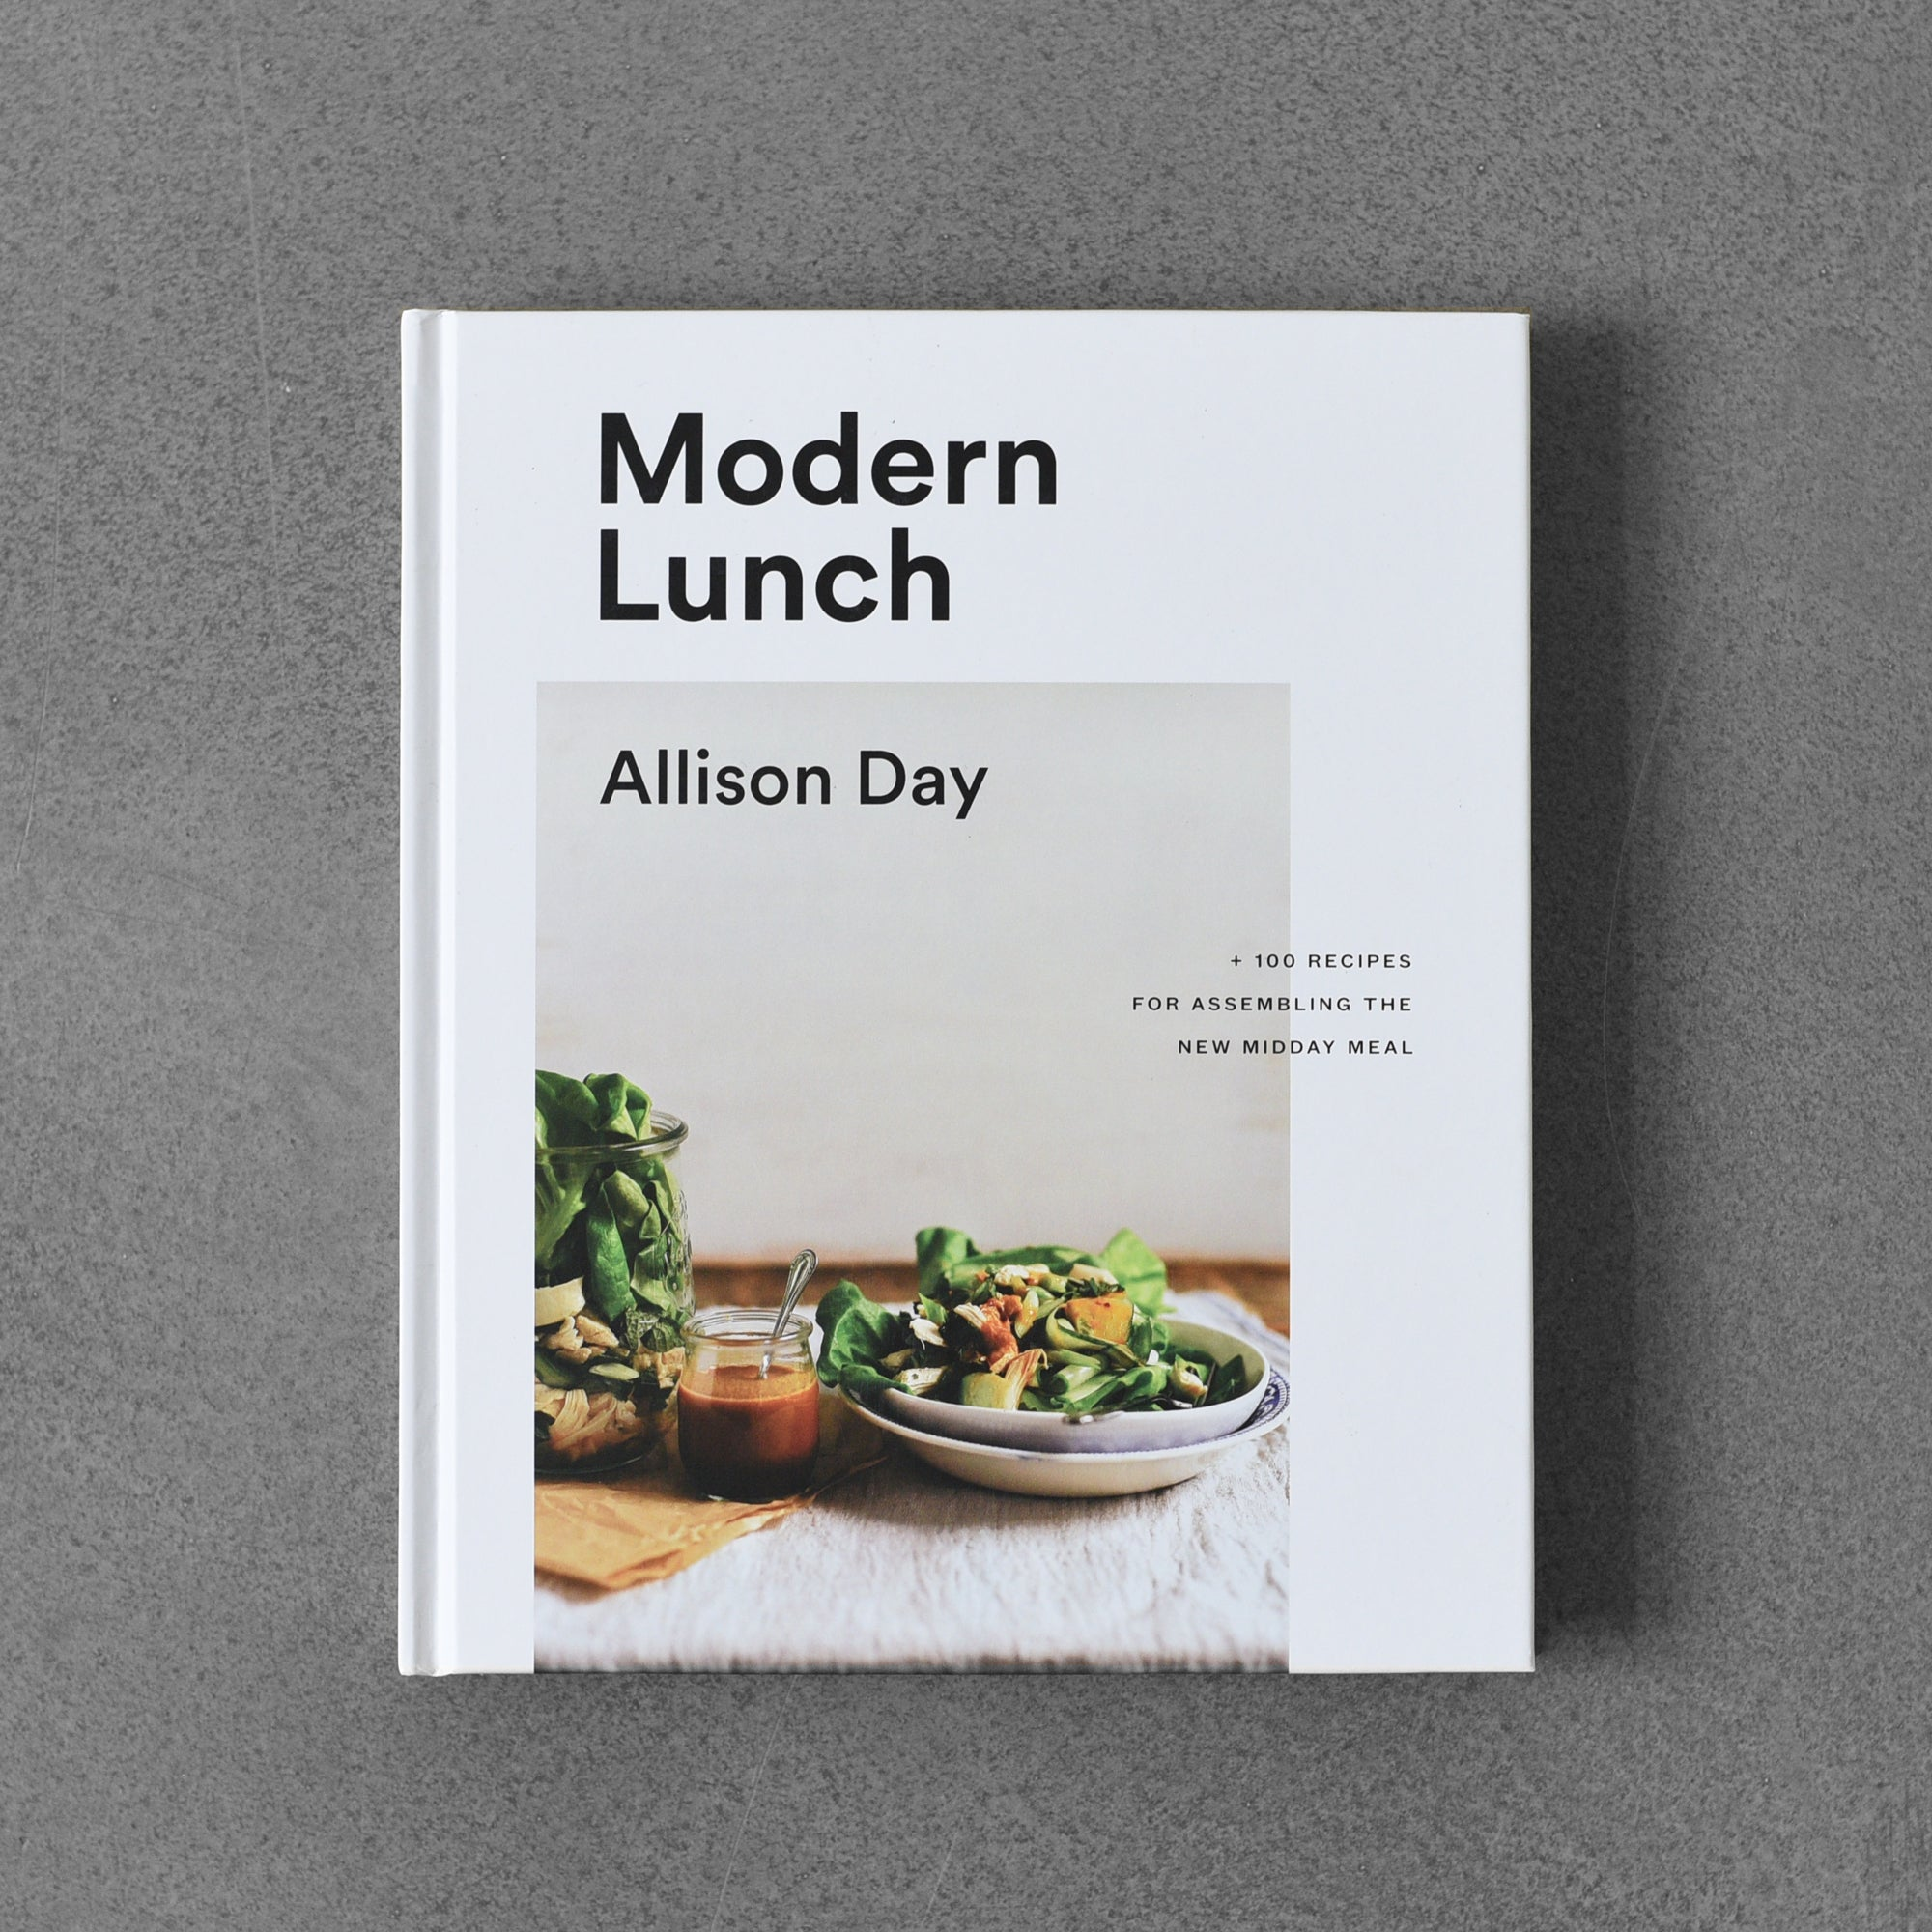 Modern Lunch: + 100 Recipes for Assembling The New Midday Meal - Allison Day